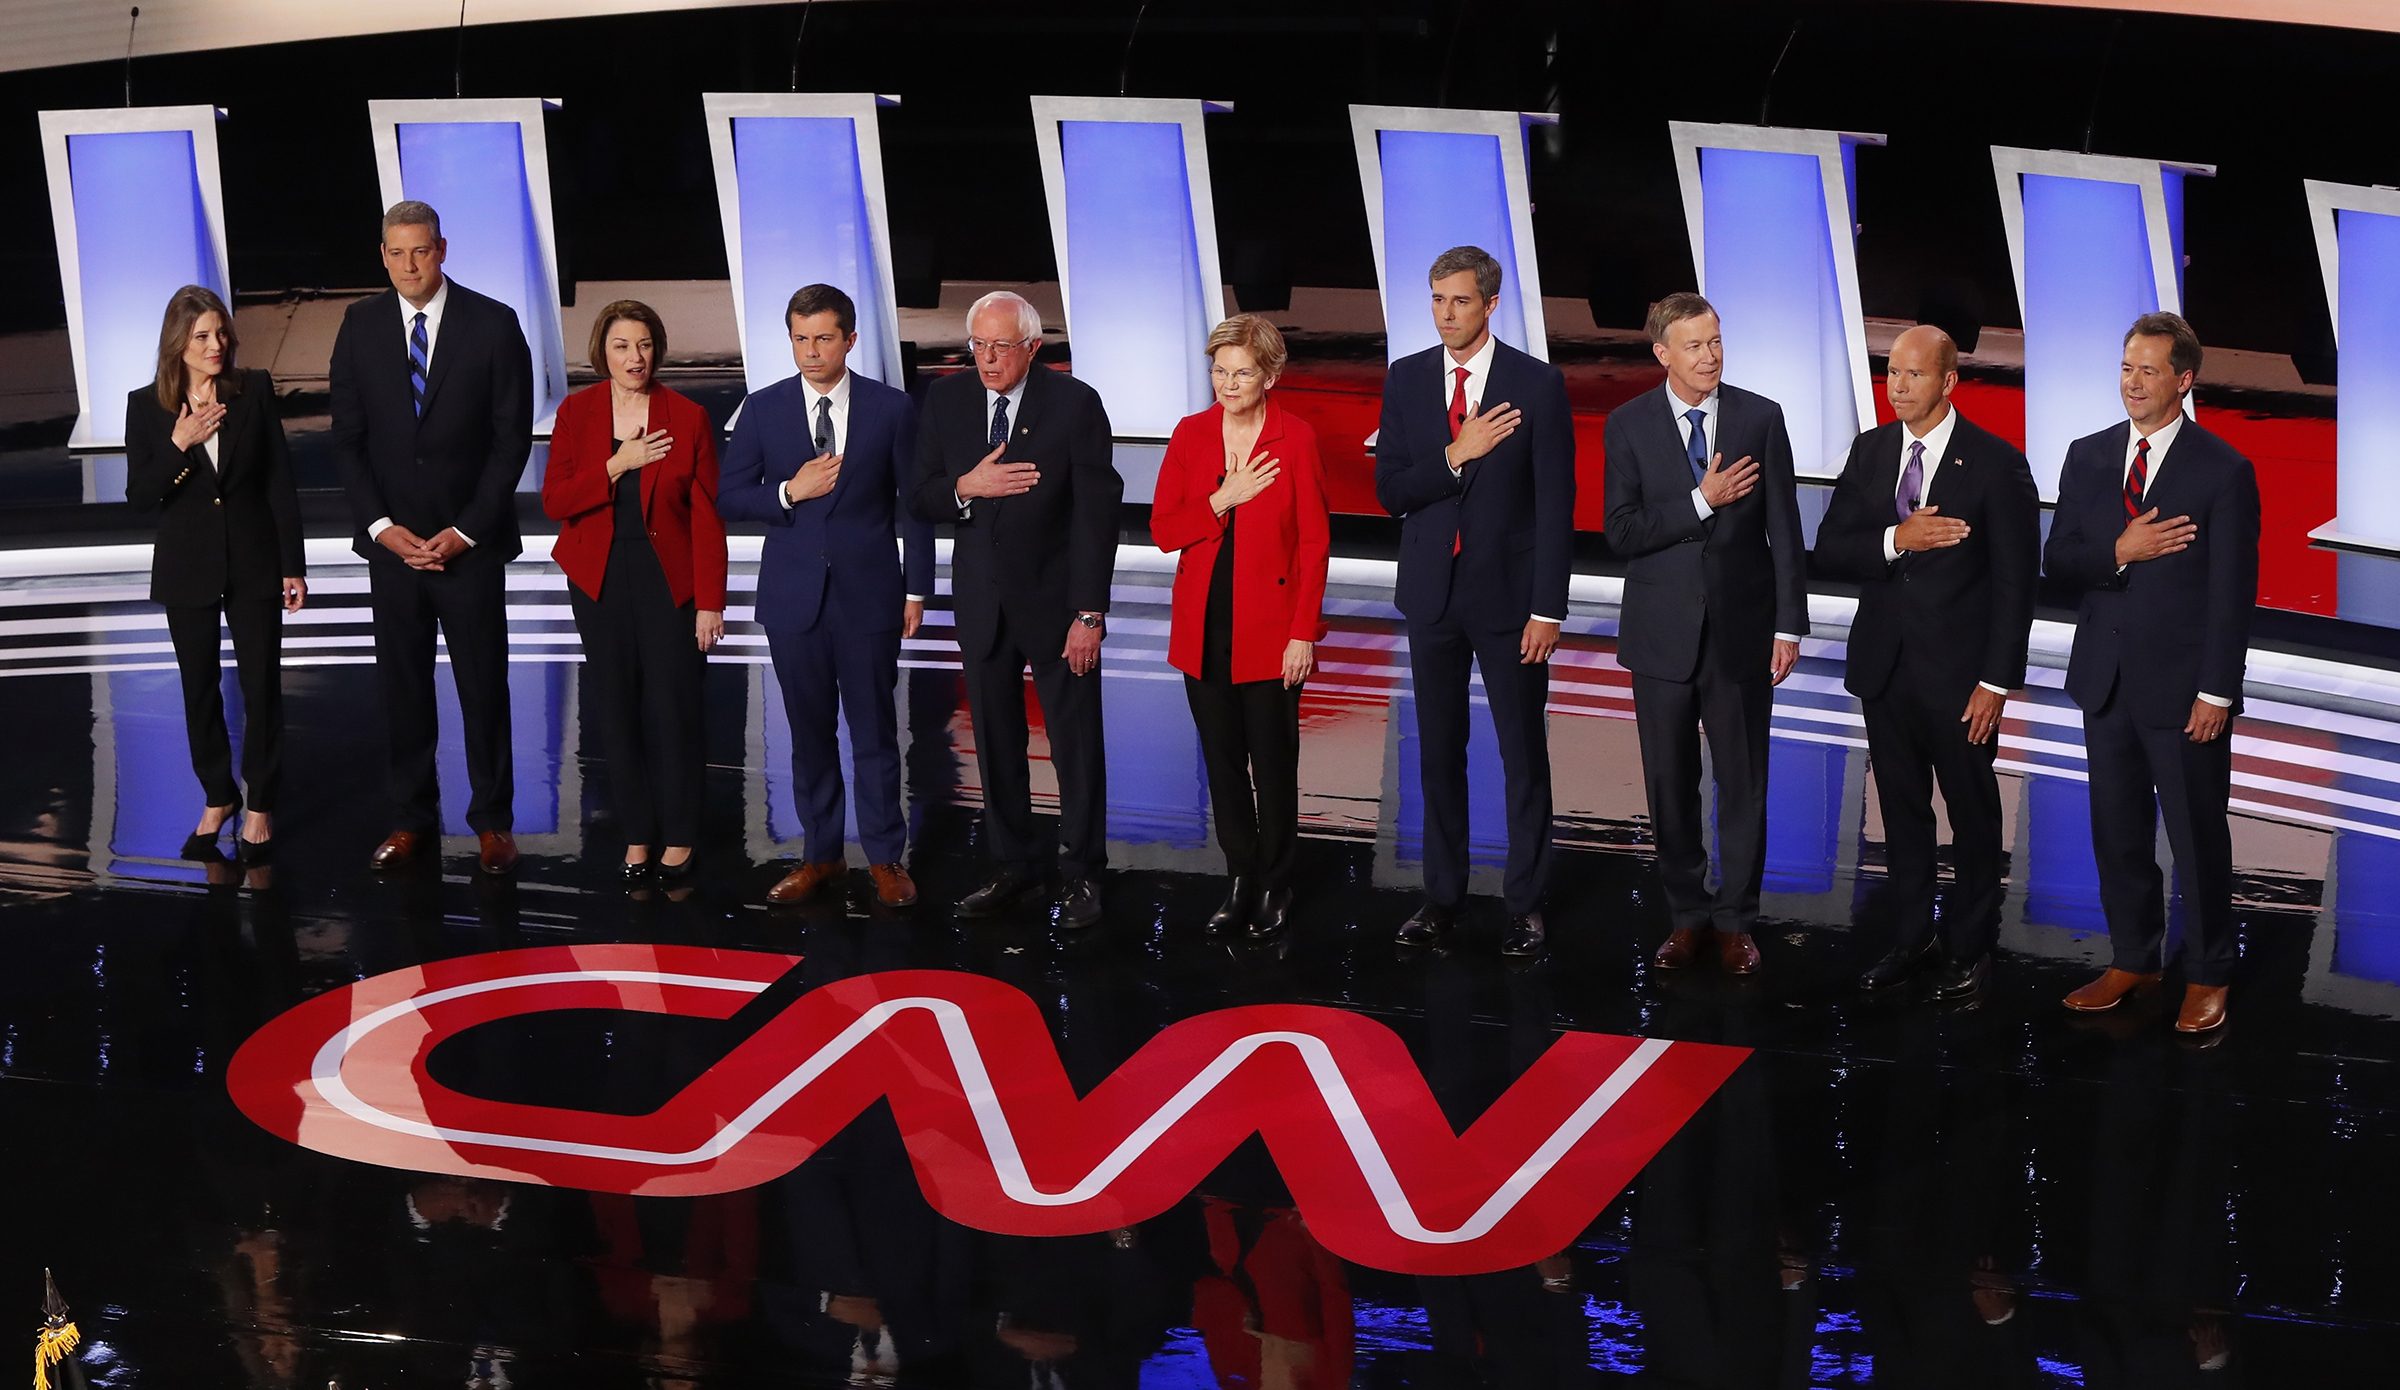 From left, Marianne Williamson, Rep. Tim Ryan, D-Ohio, Sen. Amy Klobuchar, D-Minn., South Bend Mayor Pete Buttigieg, Sen. Bernie Sanders, I-Vt., Sen. Elizabeth Warren, D-Mass., former Texas Rep. Beto O'Rourke, former Colorado Gov. John Hickenlooper, former Maryland Rep. John Delaney and Montana Gov. Steve Bullock take the stage for the first of two Democratic presidential primary debates hosted by CNN Tuesday, July 30, 2019, in the Fox Theatre in Detroit.